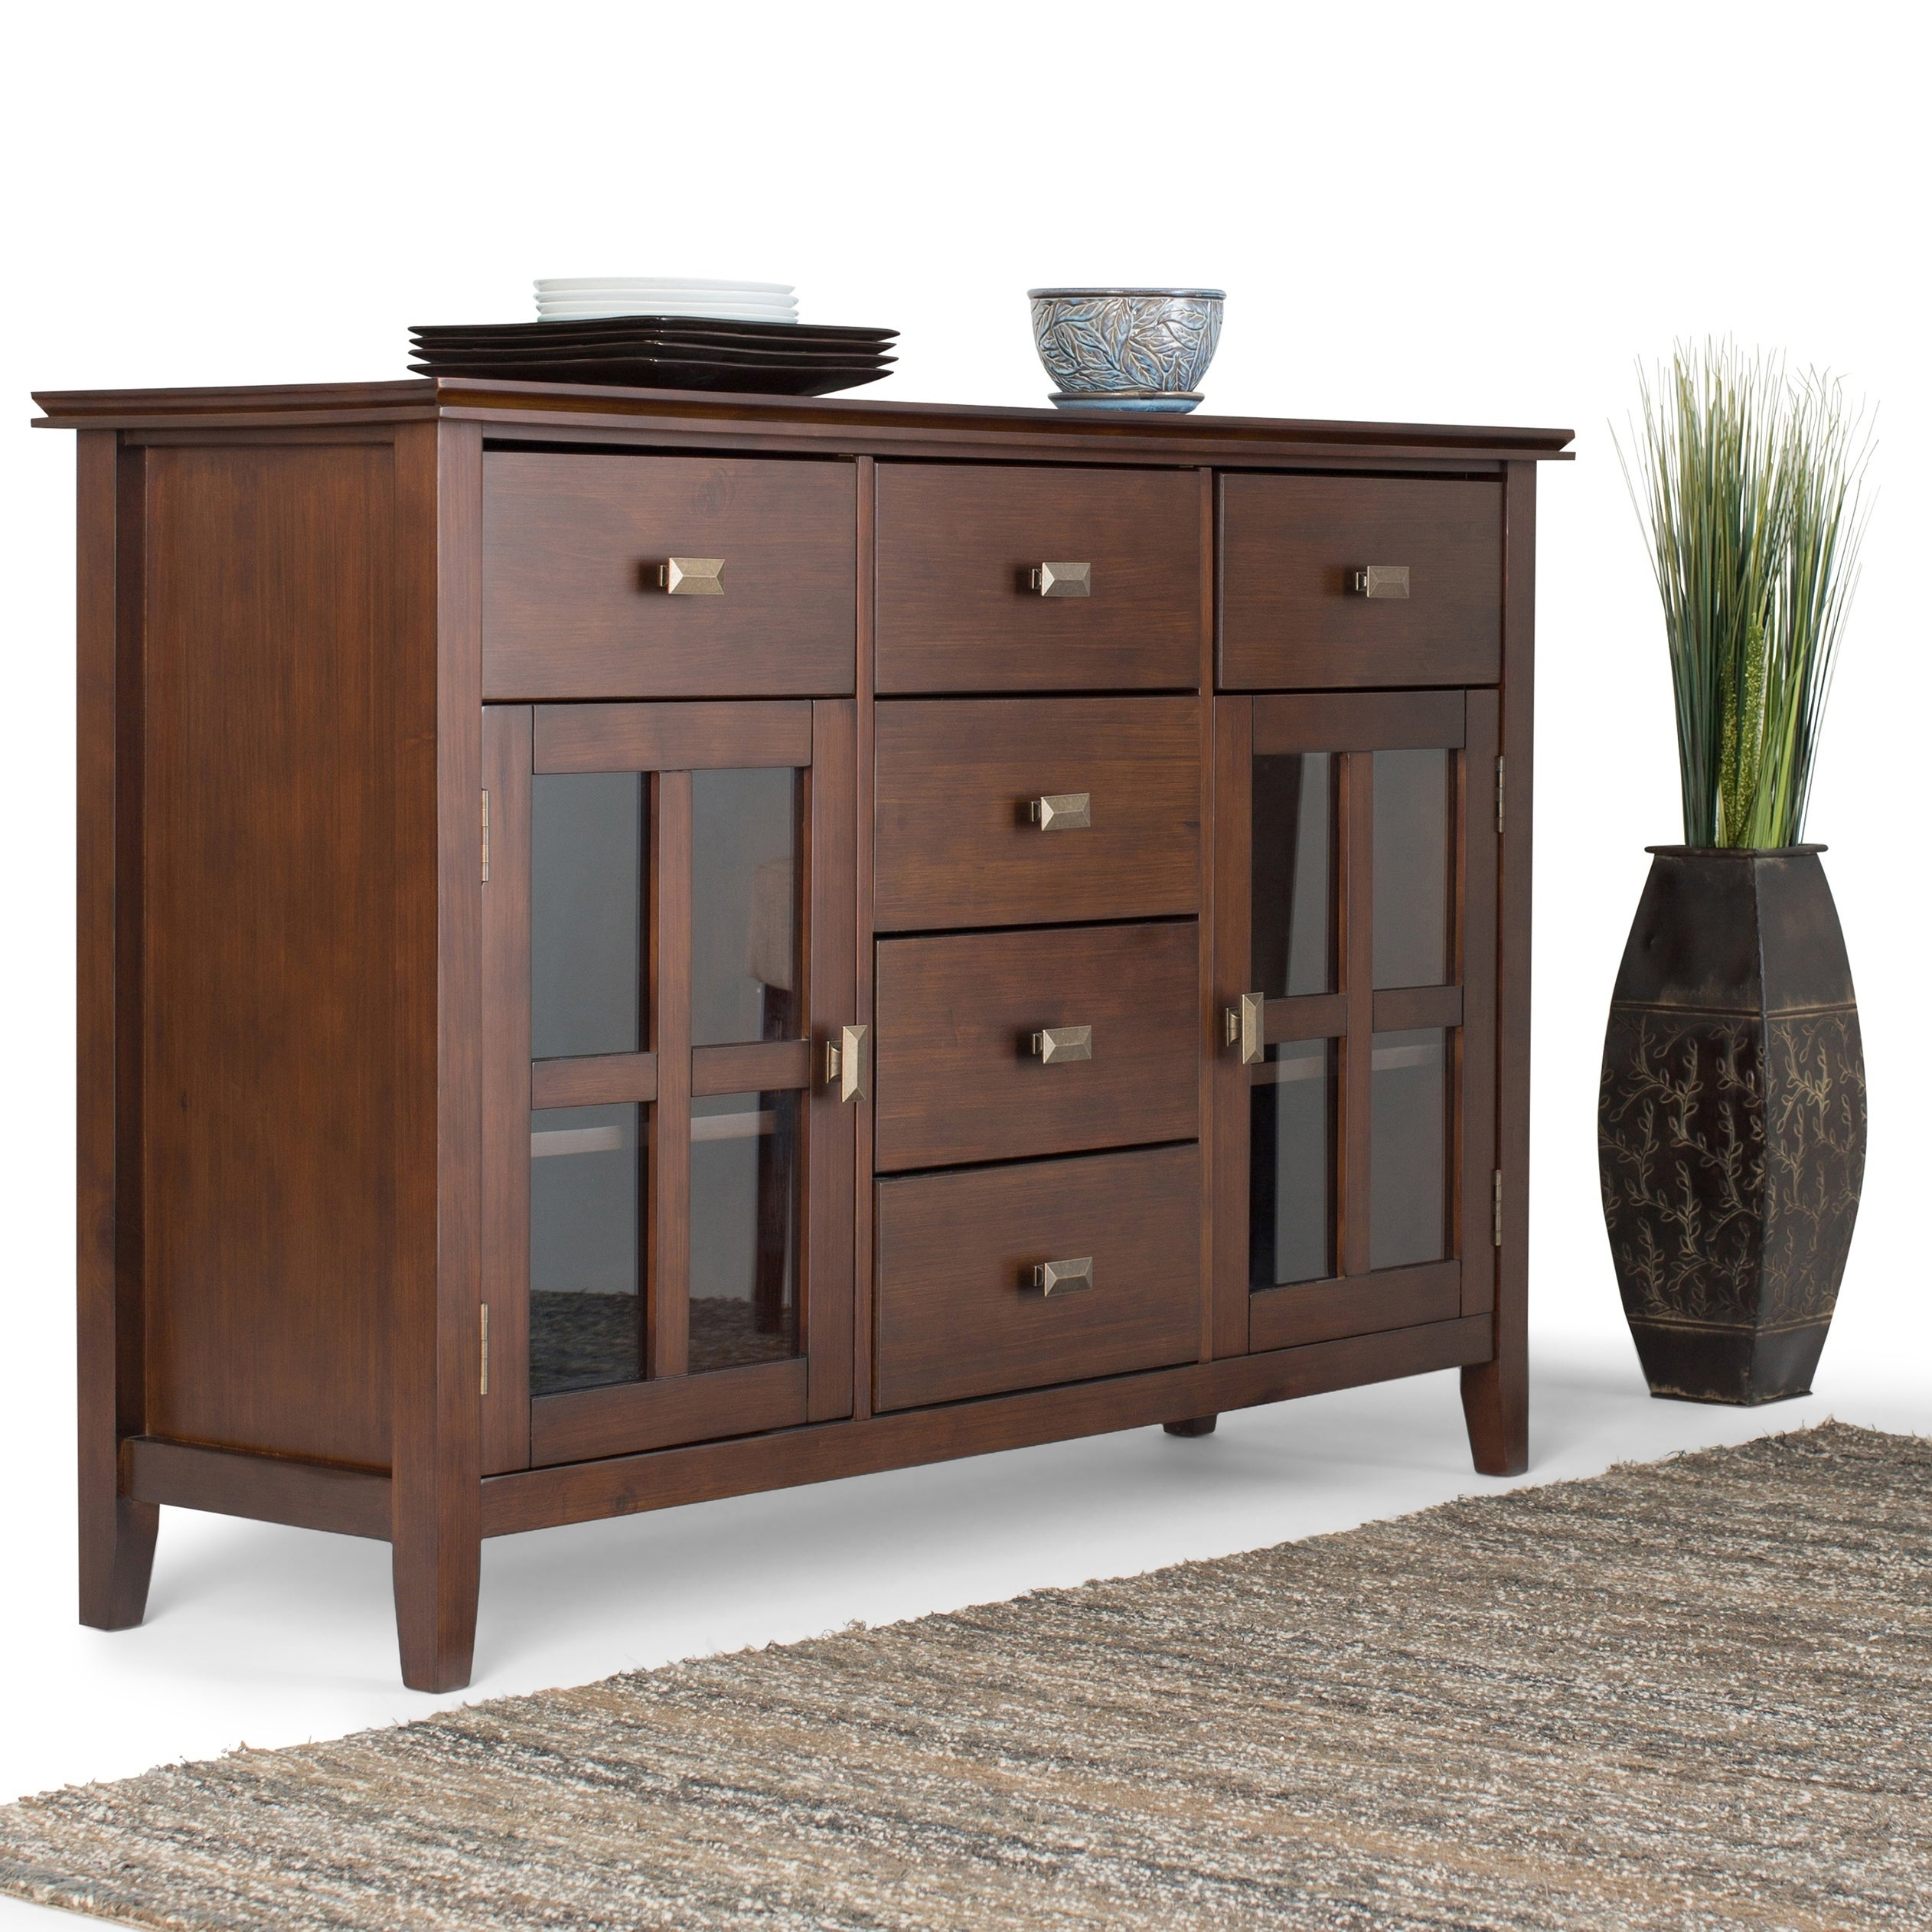 Wyndenhall Stratford Solid Wood 54 Inch Wide Contemporary Sideboard Buffet Credenza – 54 Inch Wide For Contemporary Wooden Buffets With One Side Door Storage Cabinets And Two Drawers (View 3 of 30)